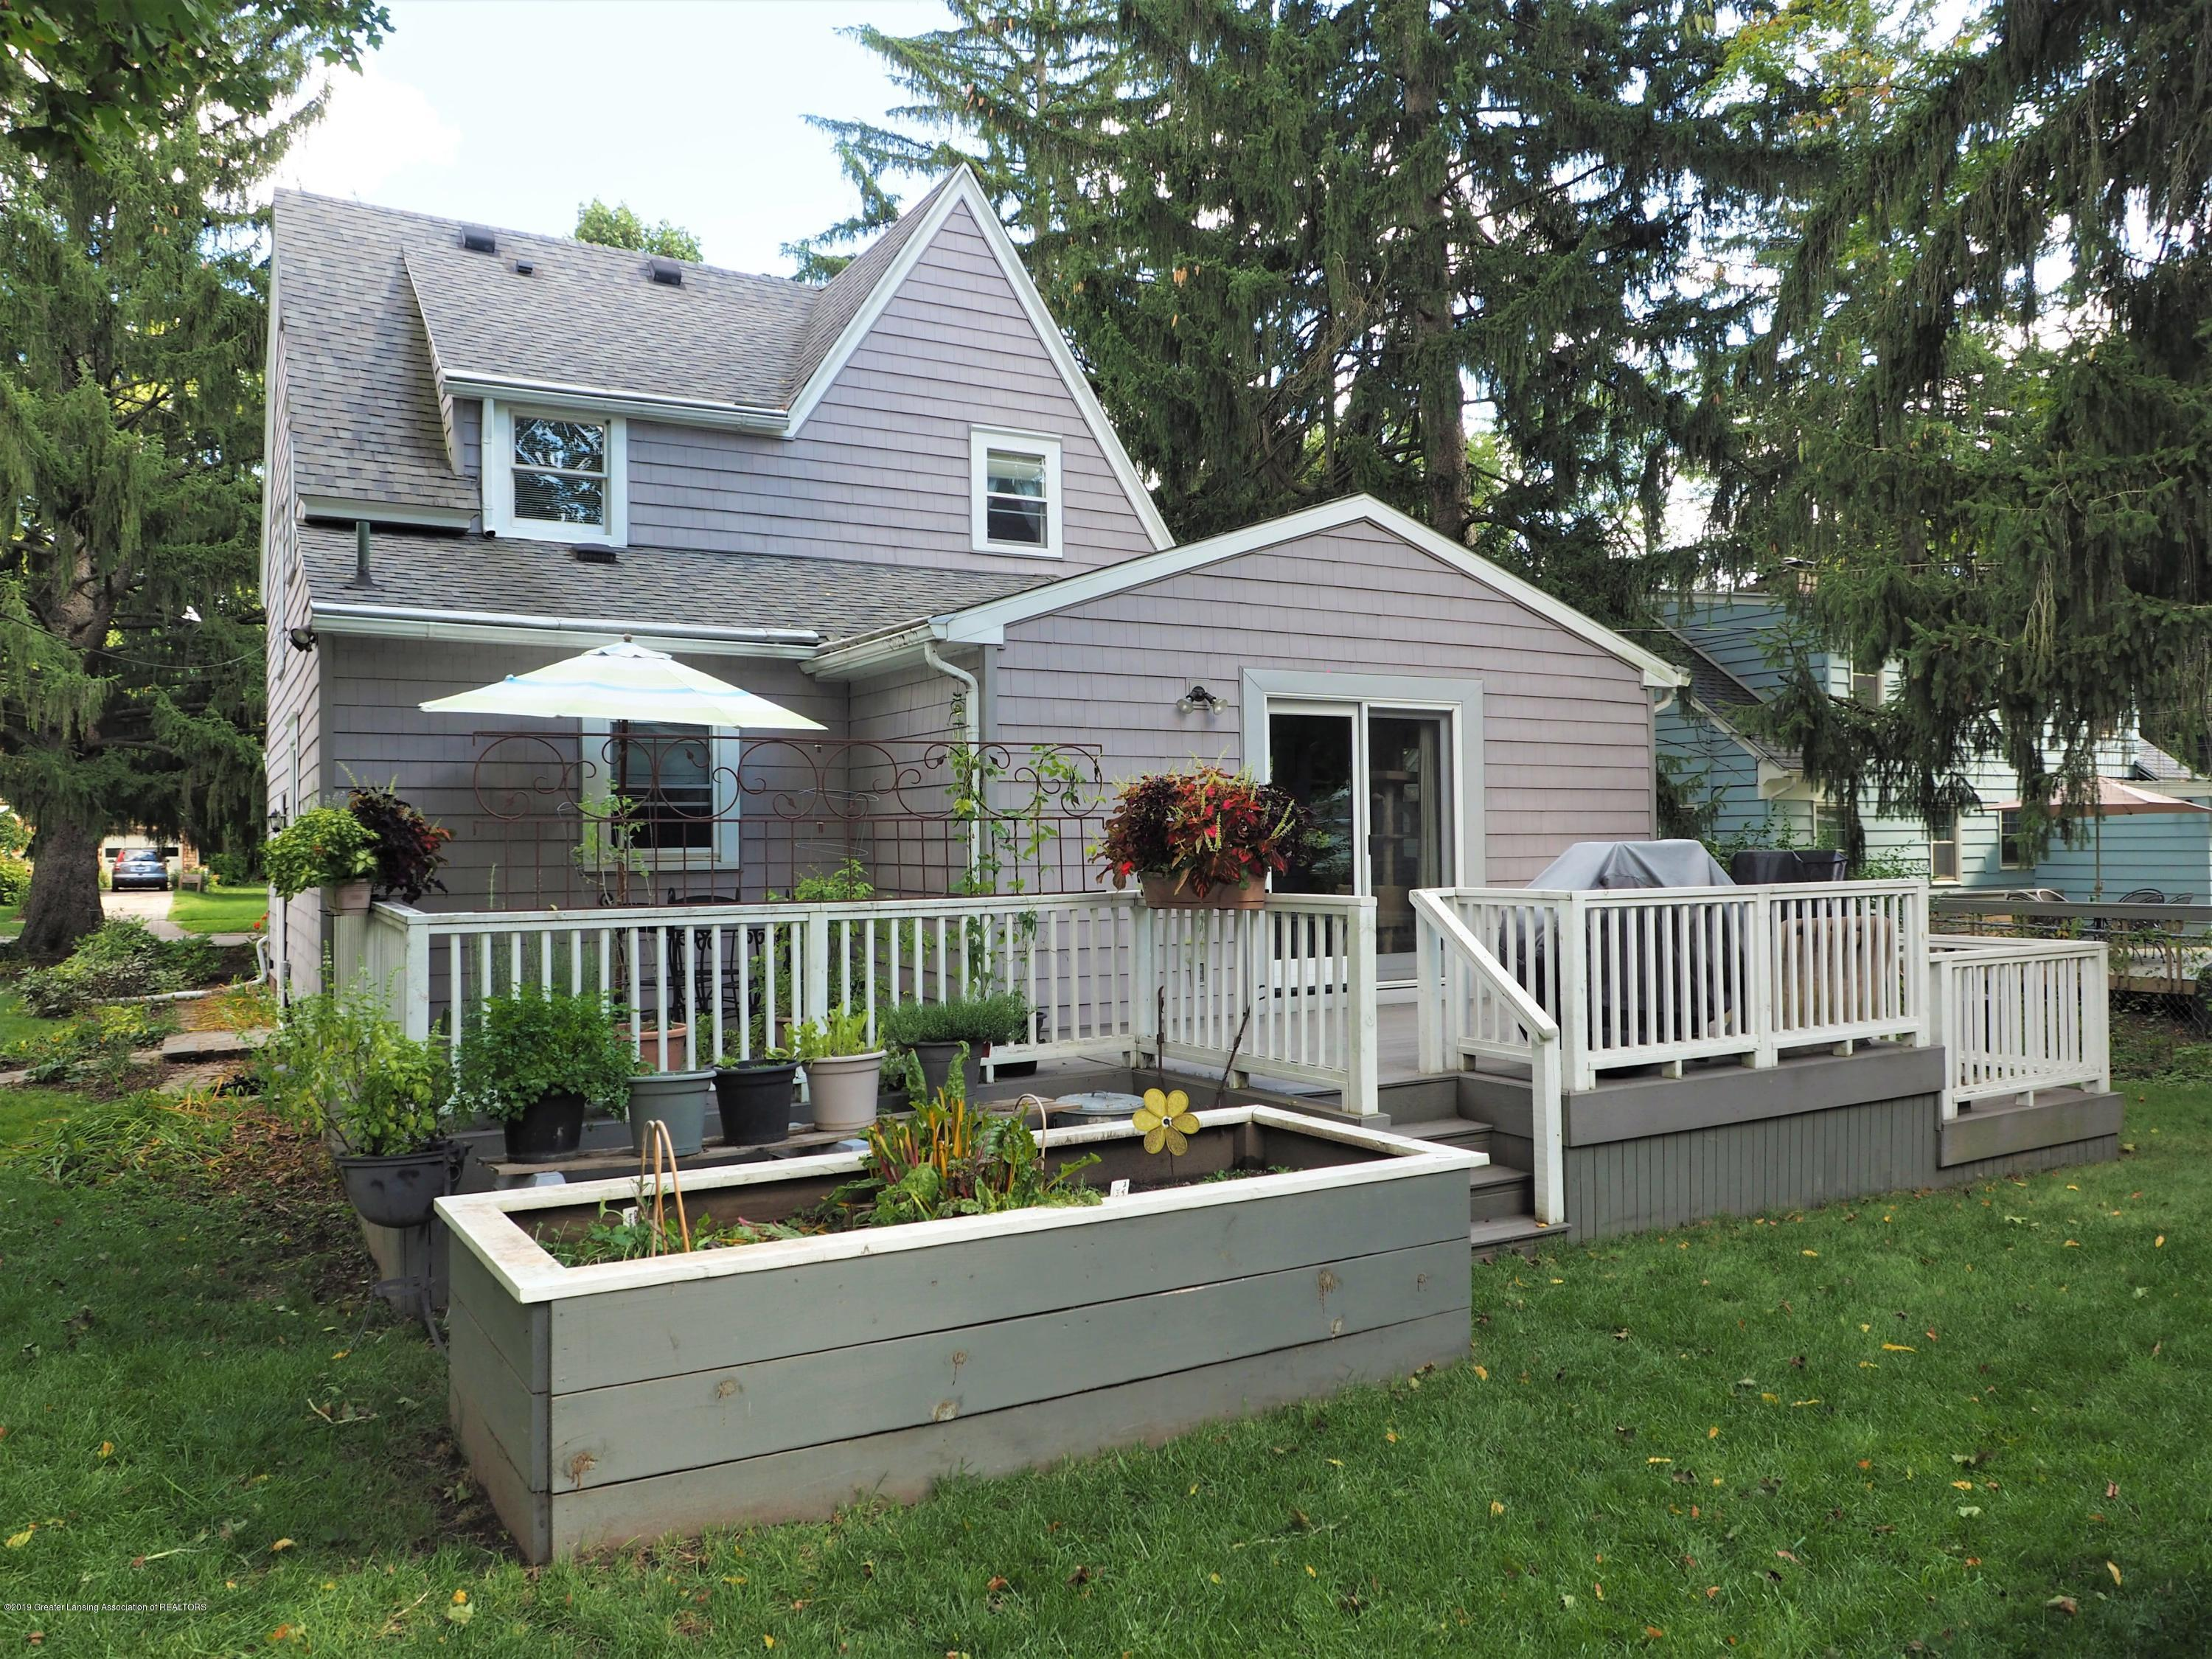 343 Cowley Ave - P1011465 - 35